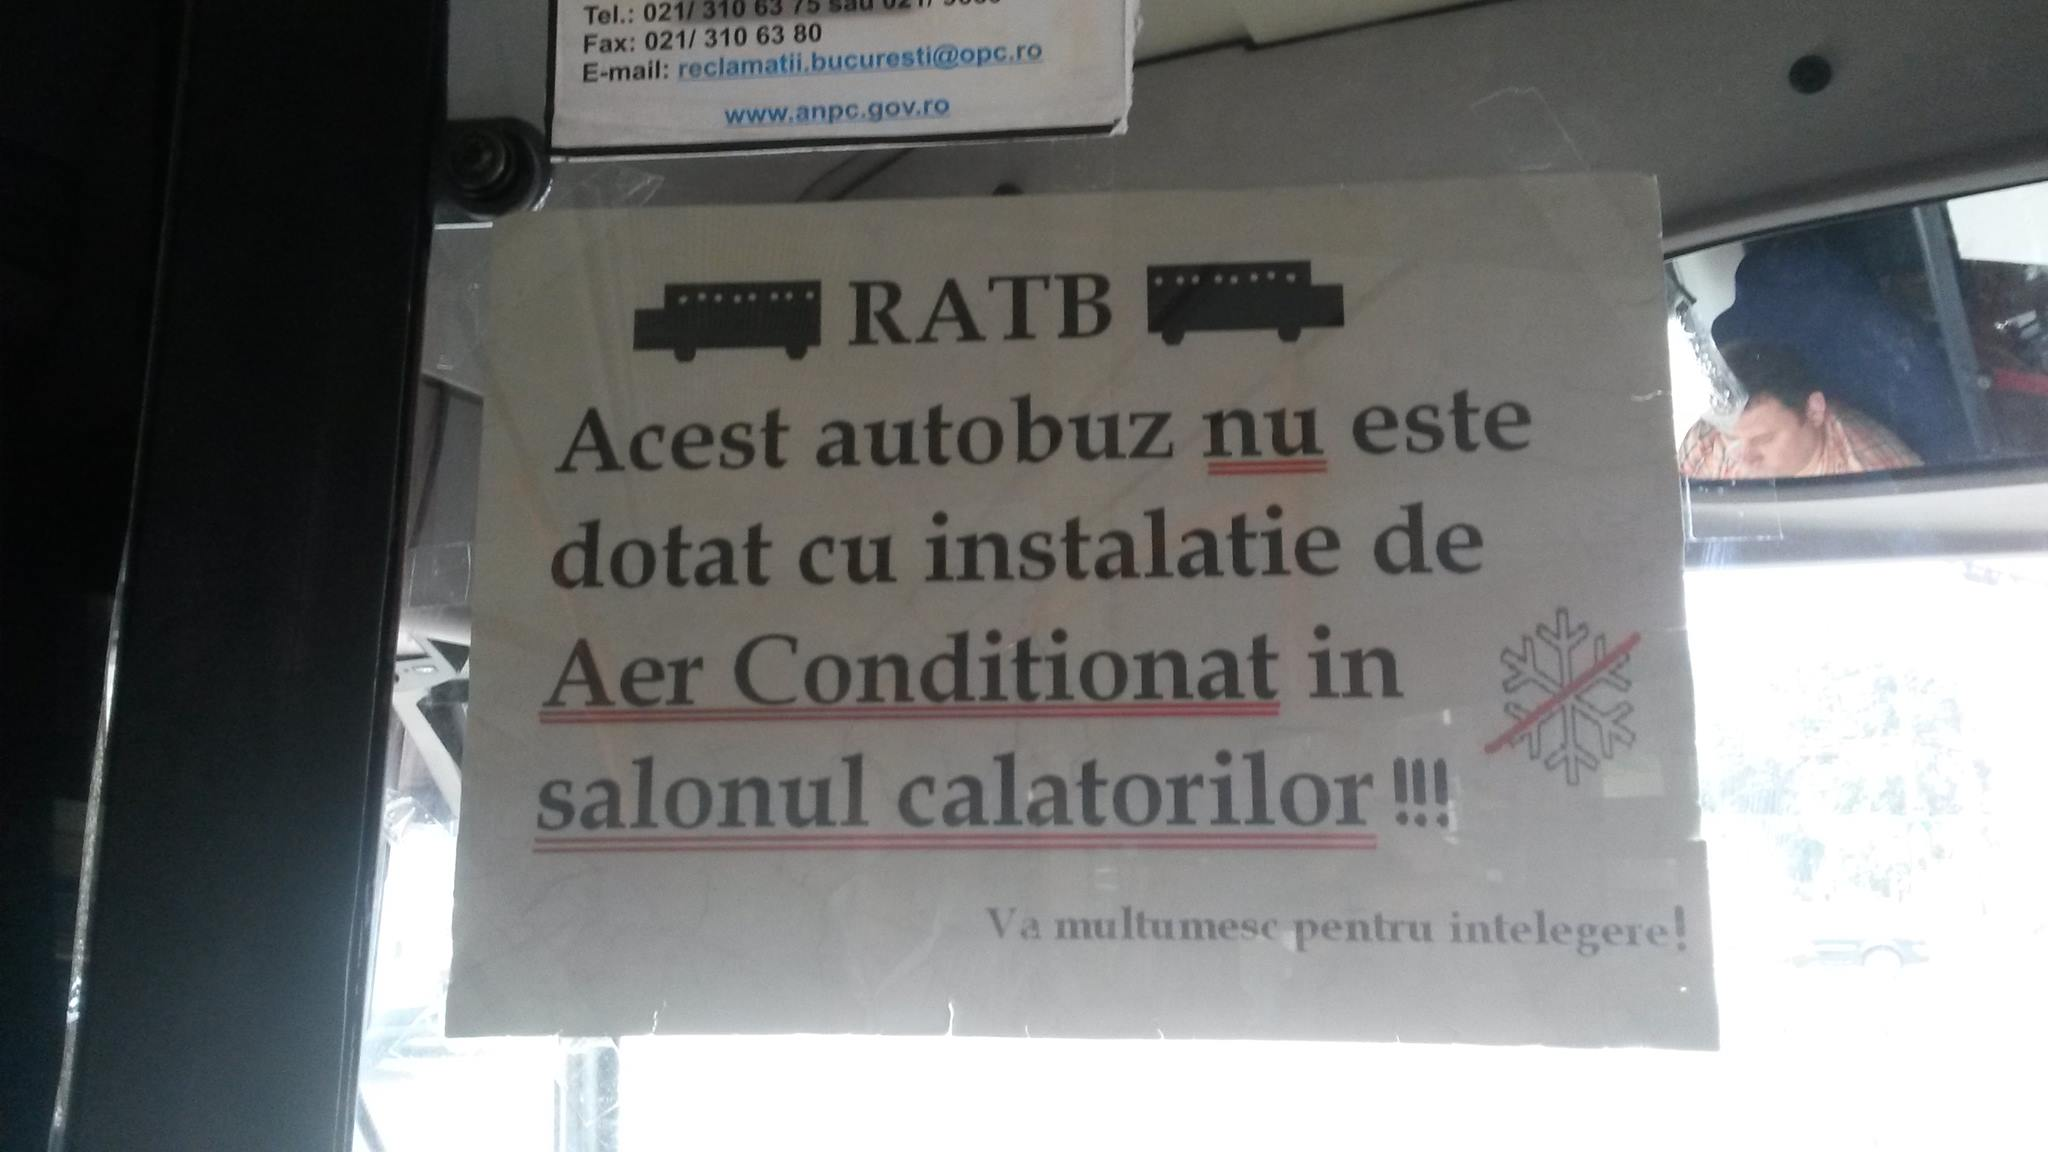 RATB Aer Conditionat